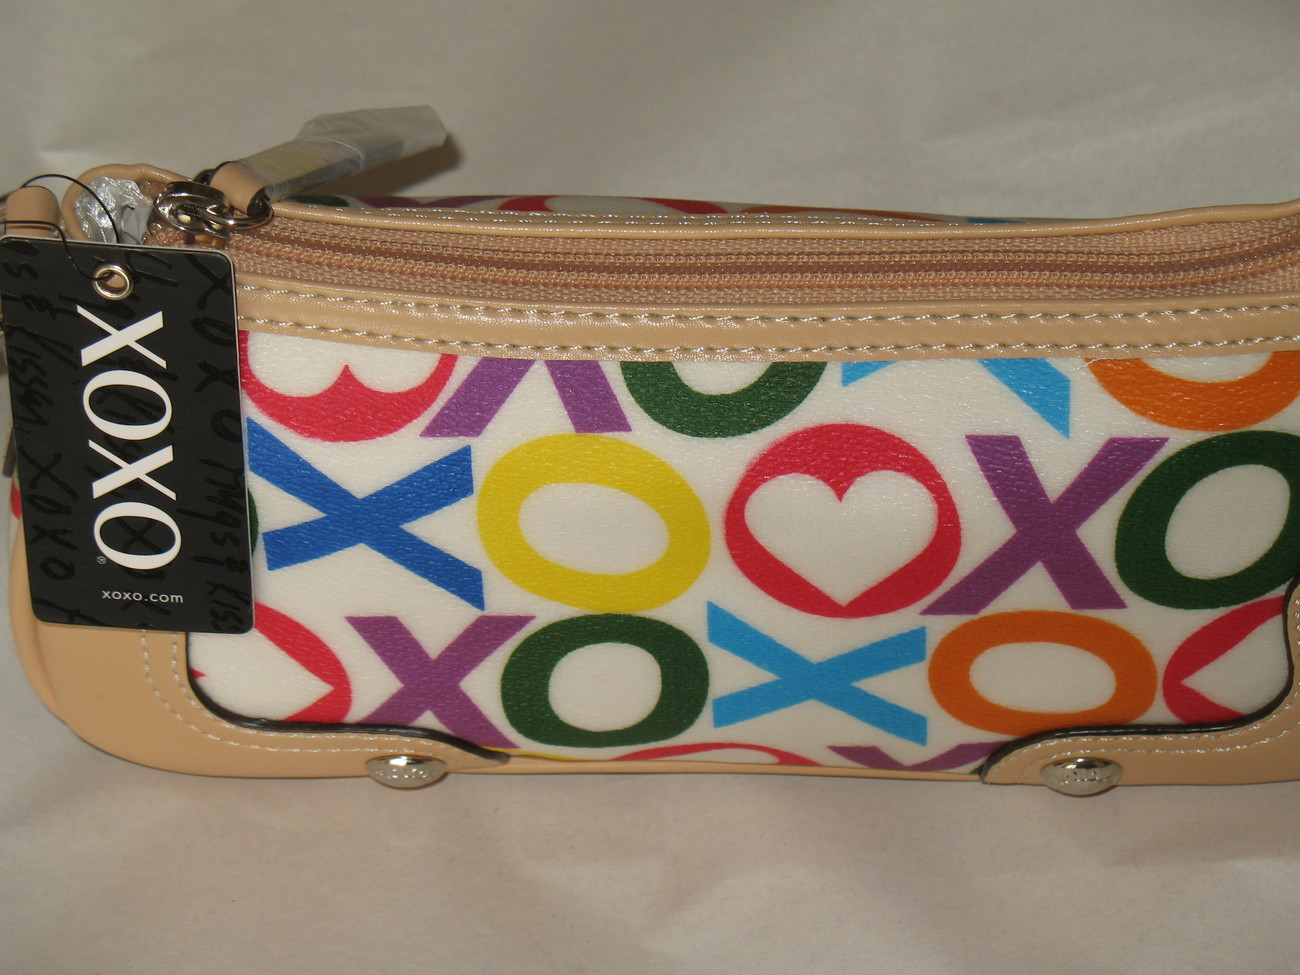 XOXO NEW PURSE HANDBAG WHITE SMALL MULTI-COLOR TOTE NWT